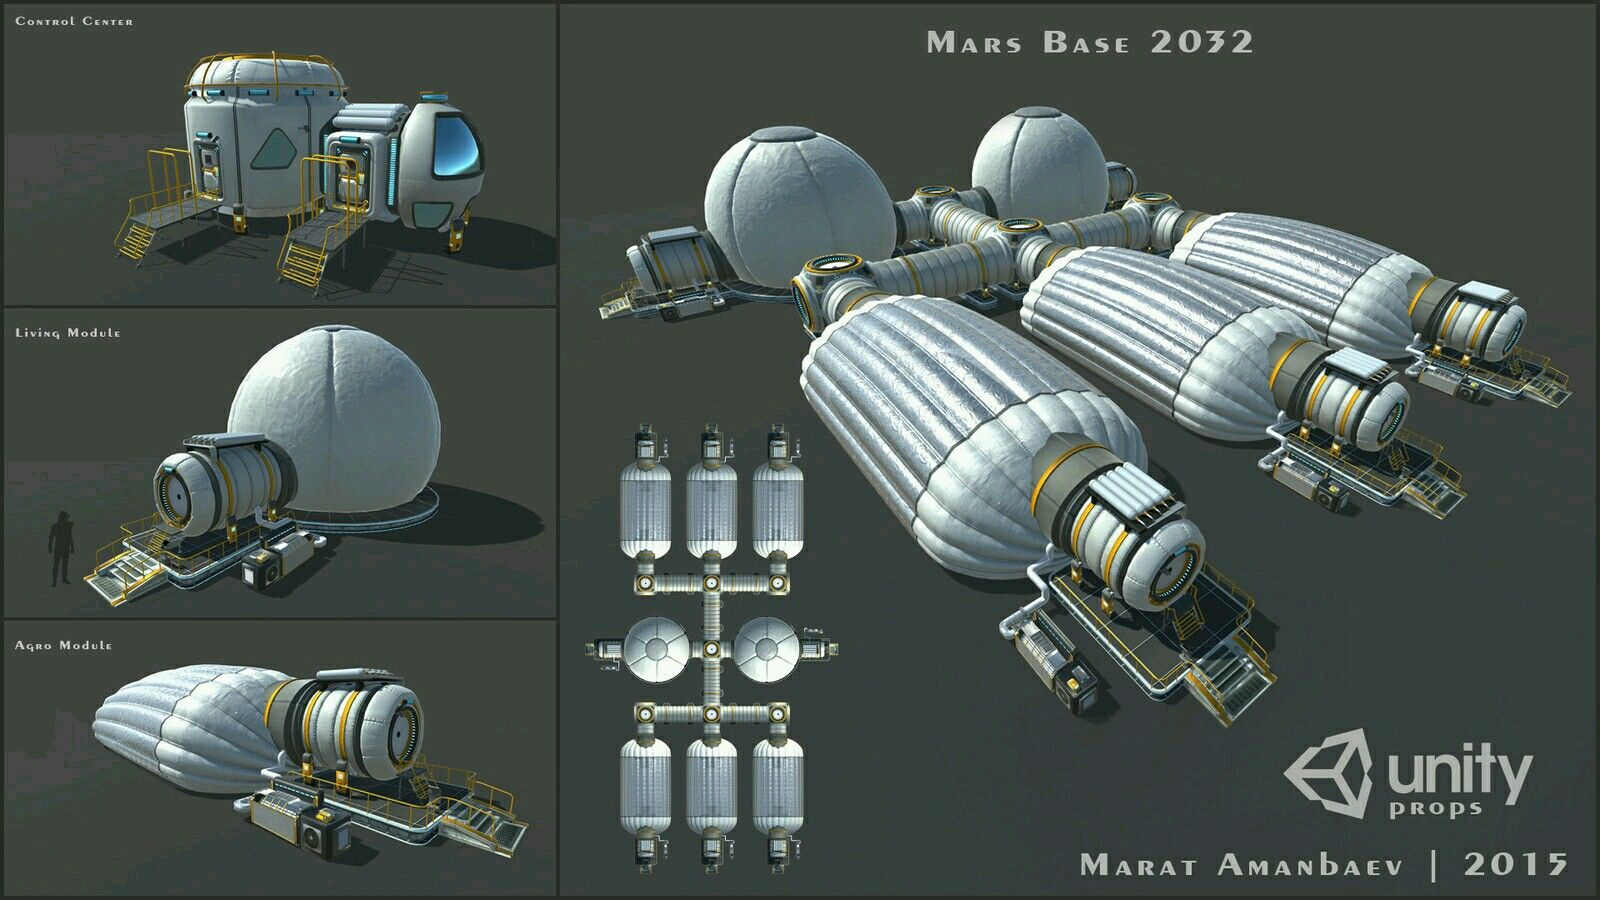 Mars base 2032 | Space, Stations & Colonies | Mars colony ...